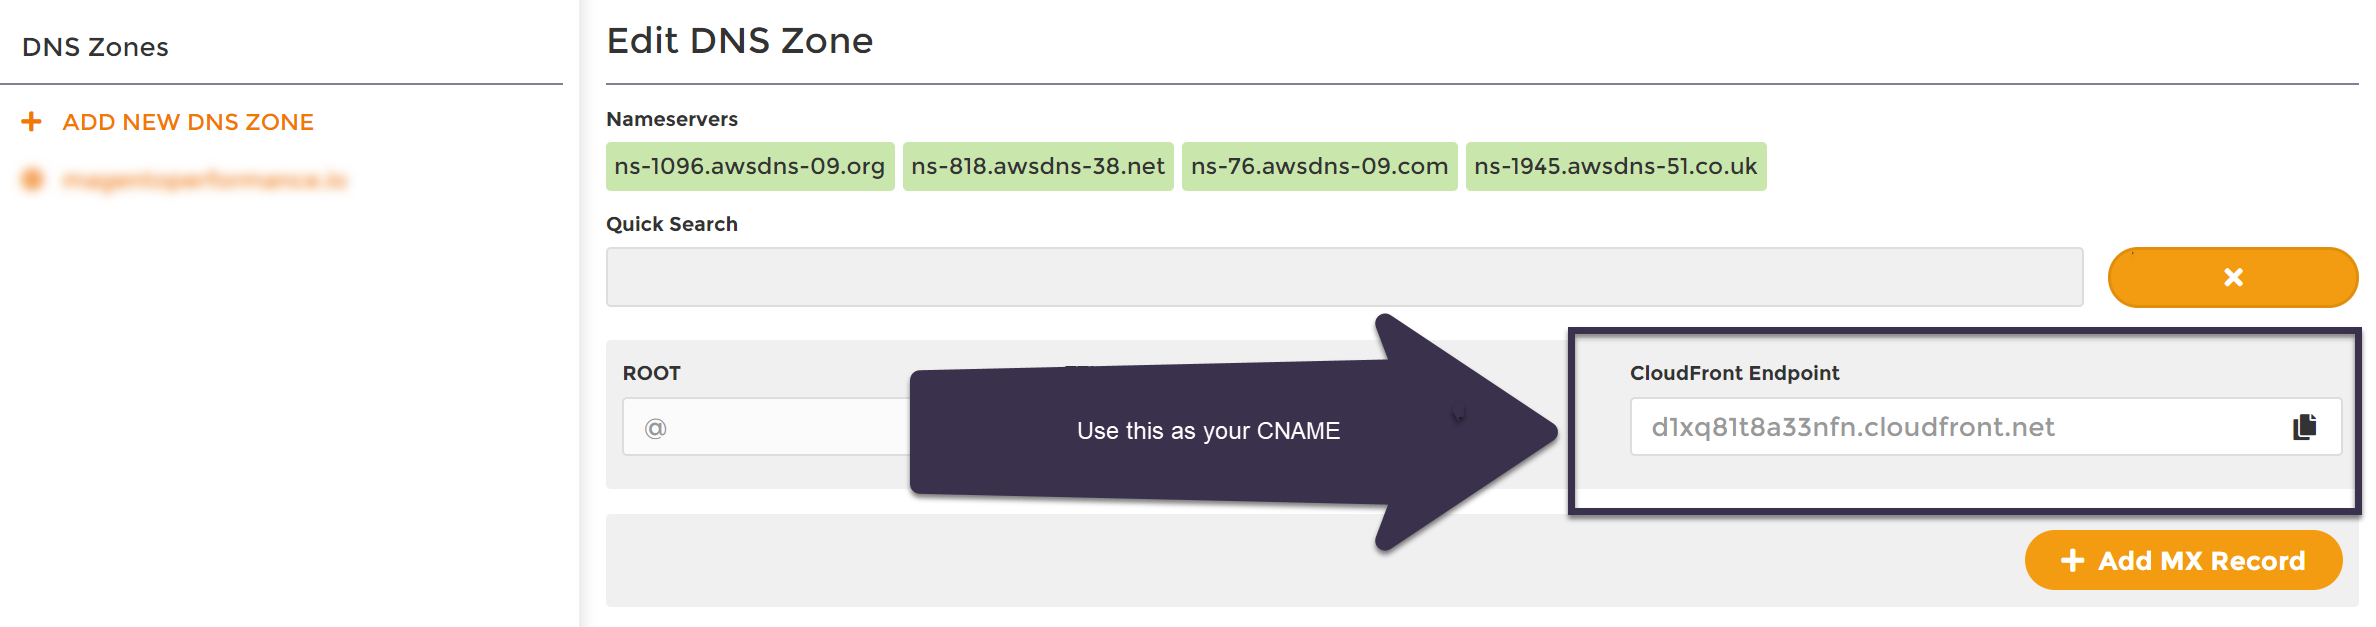 DNS Recommendations - MageMojo Knowledge Base